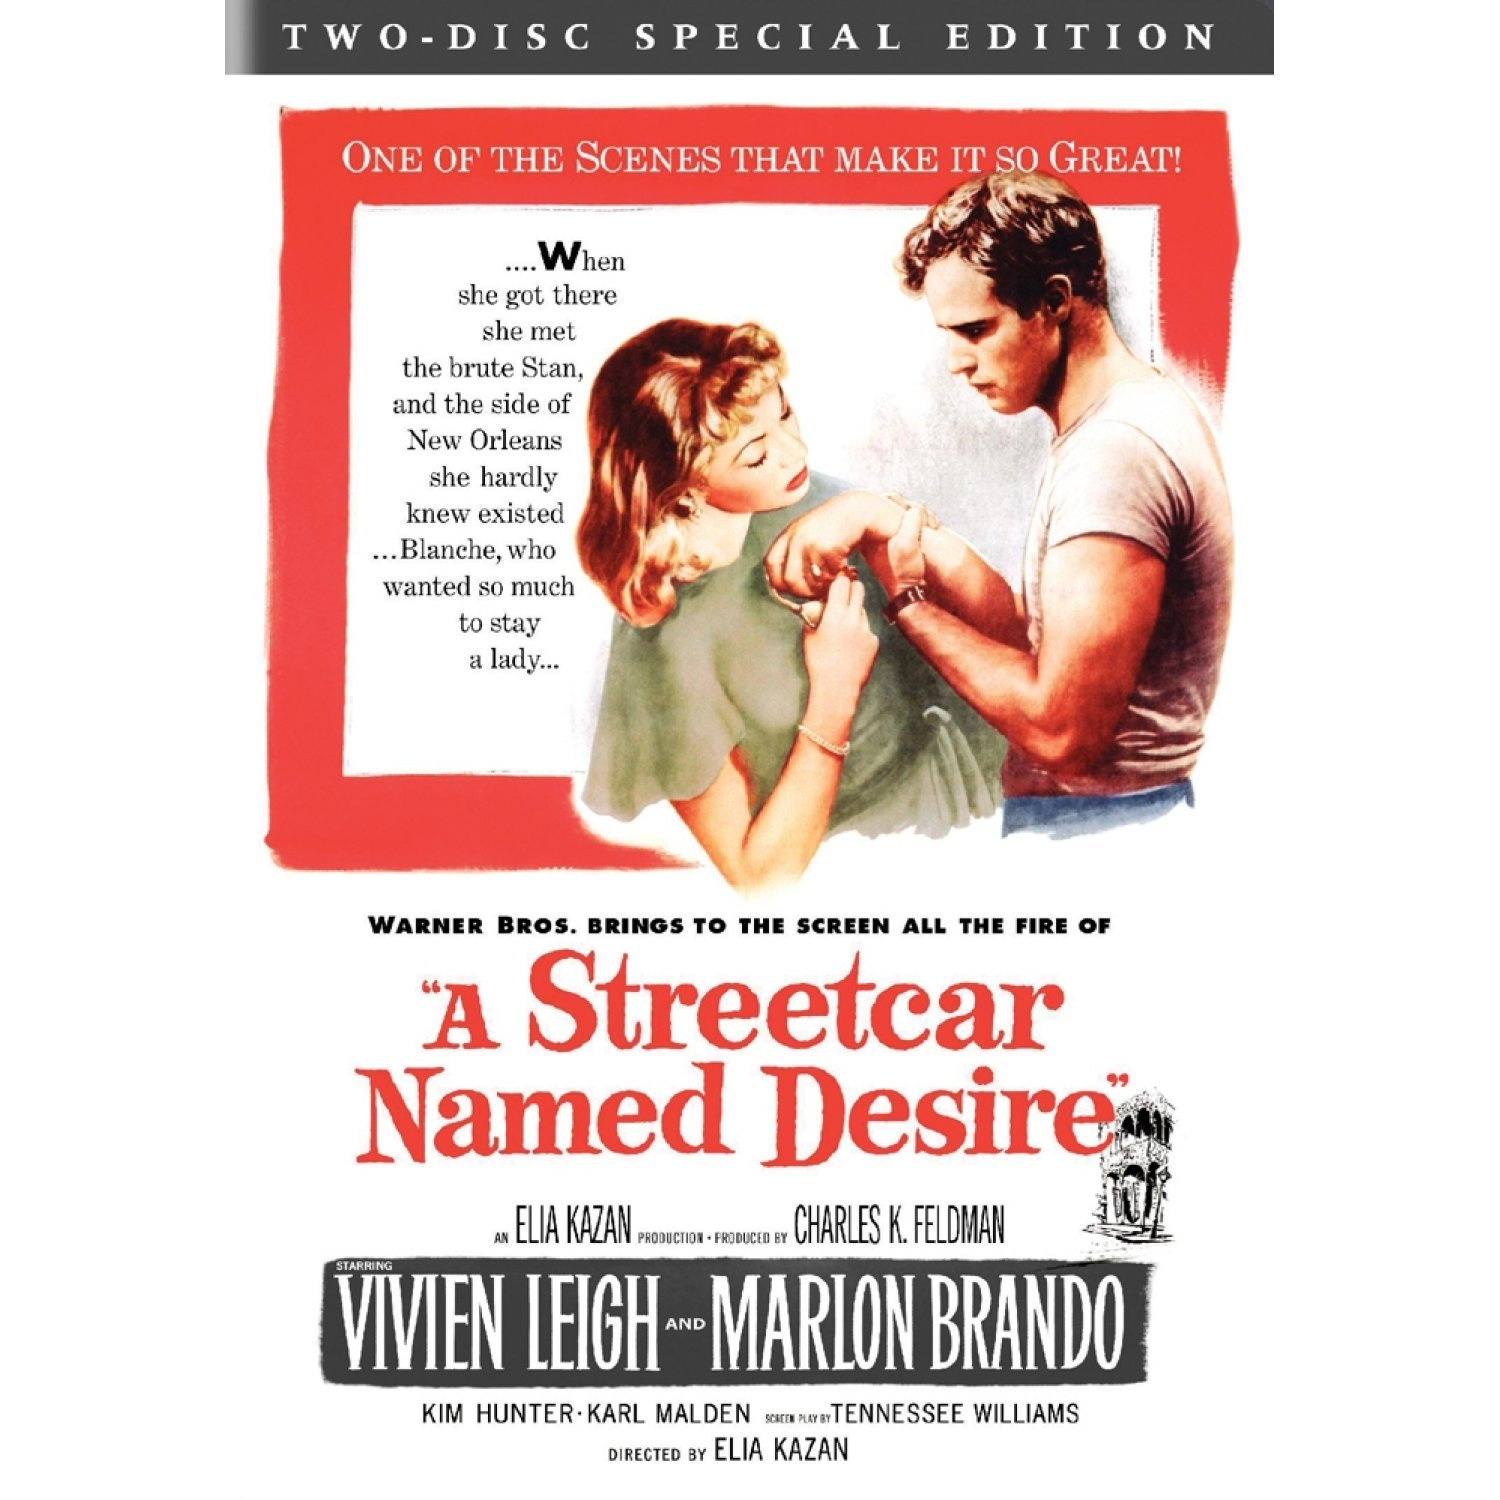 a streetcar named desire the women One of the themes in tennessee williams' play, a streetcar named desire, concerns gender roles in the play, stanley is depicted as the dominant male figure he is described to have a beast-like quality about him, suggesting that he is not only physically built, but that he also has a bad temper.